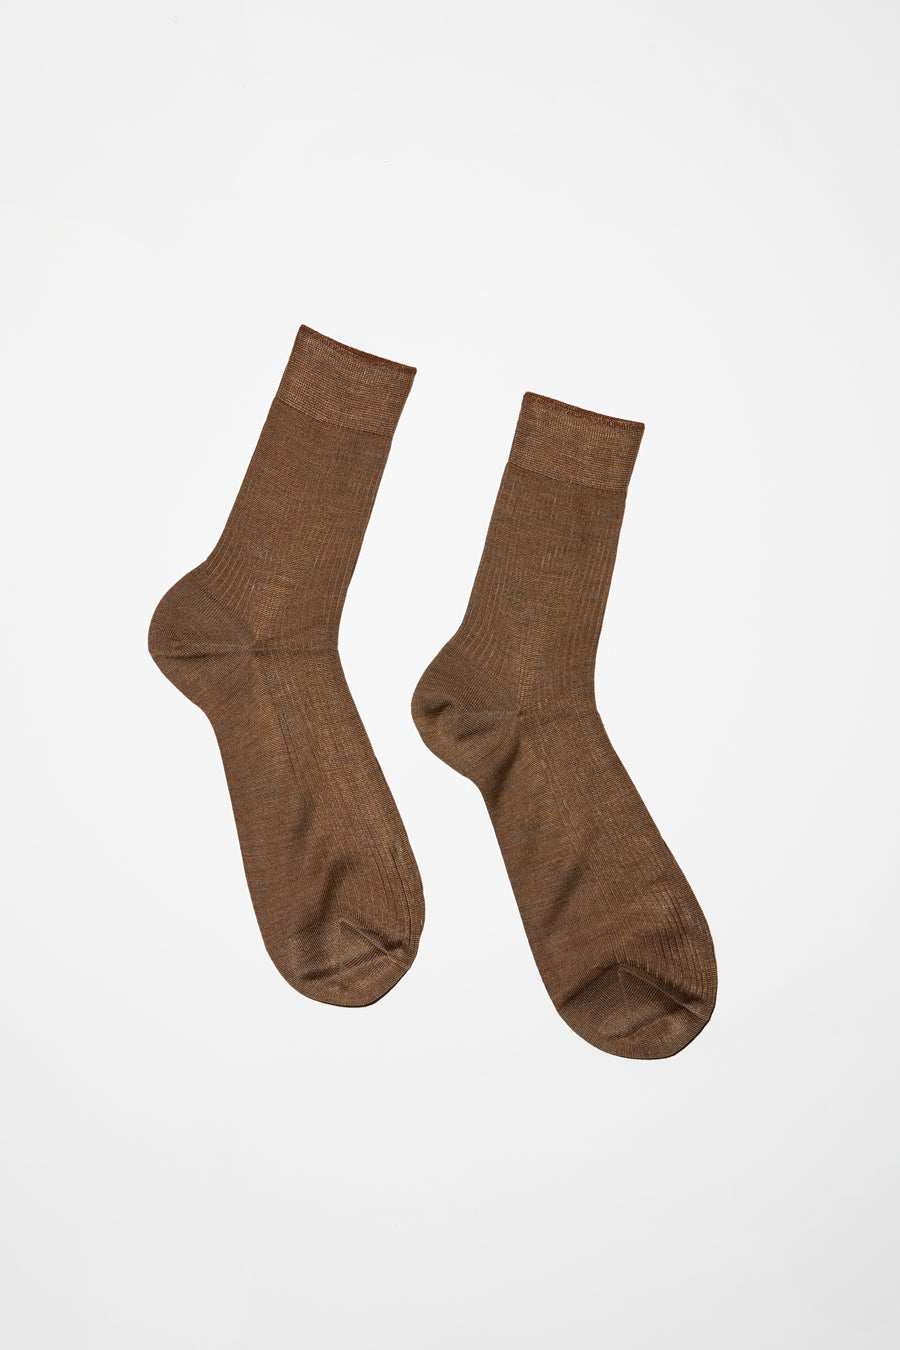 Maria La Rosa Silk Ribbed Ankle Sock in Bruciato